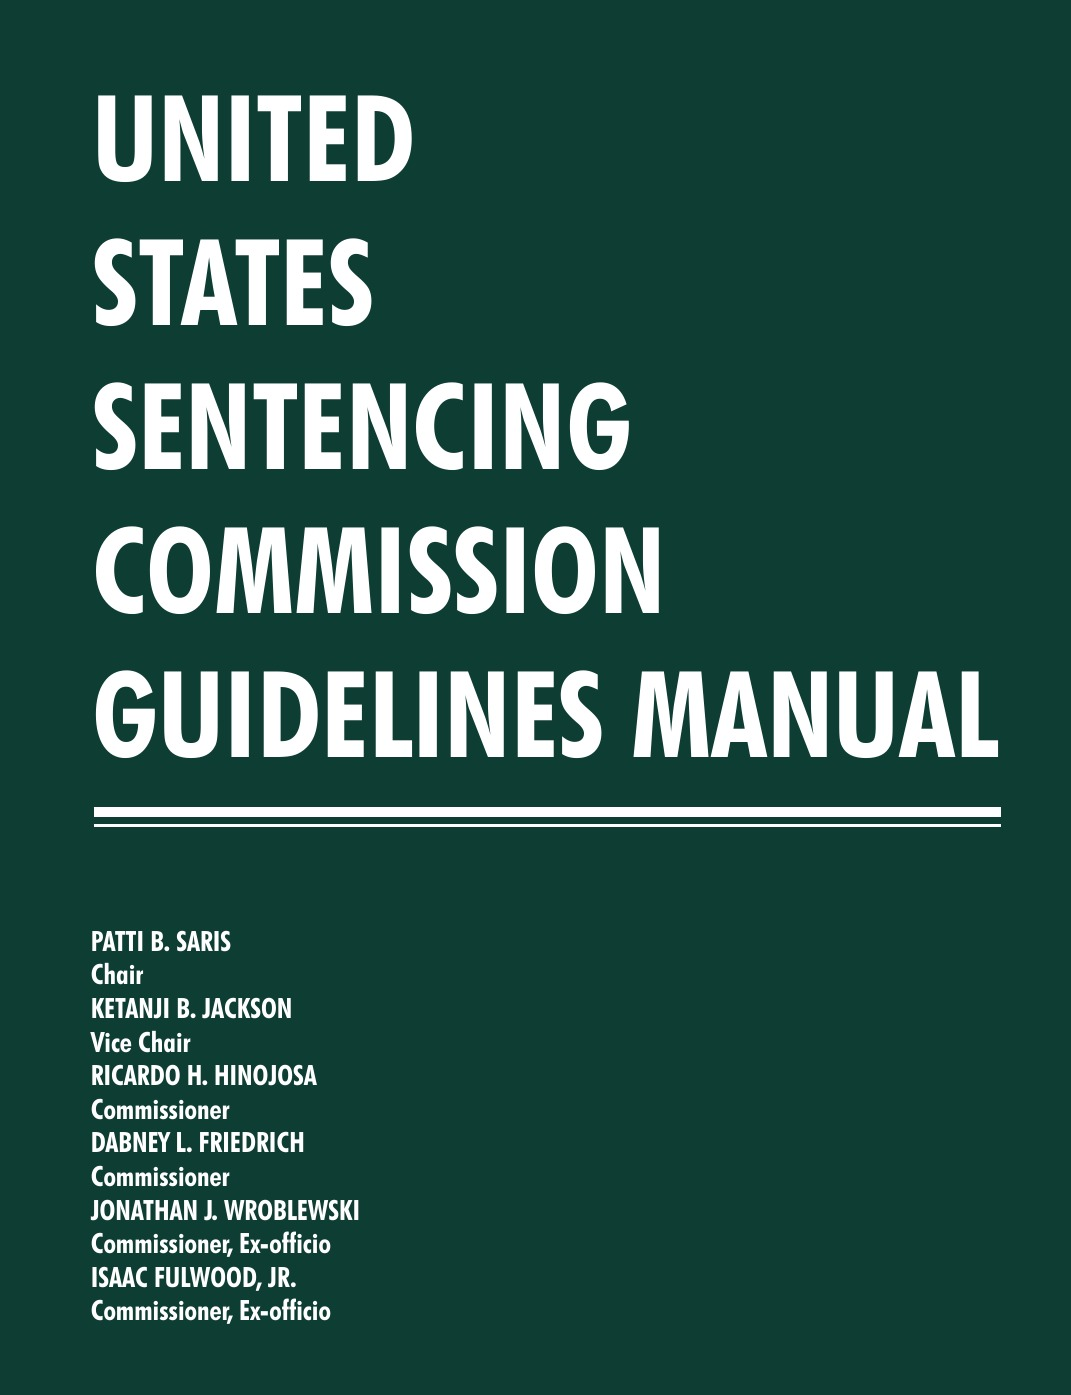 United States Sentencing Commission United States Sentencing Commission Guidelines Manual 2013-2014 edward forbes the university snowdrop an appendix to the great trial containing a selection of squibs old